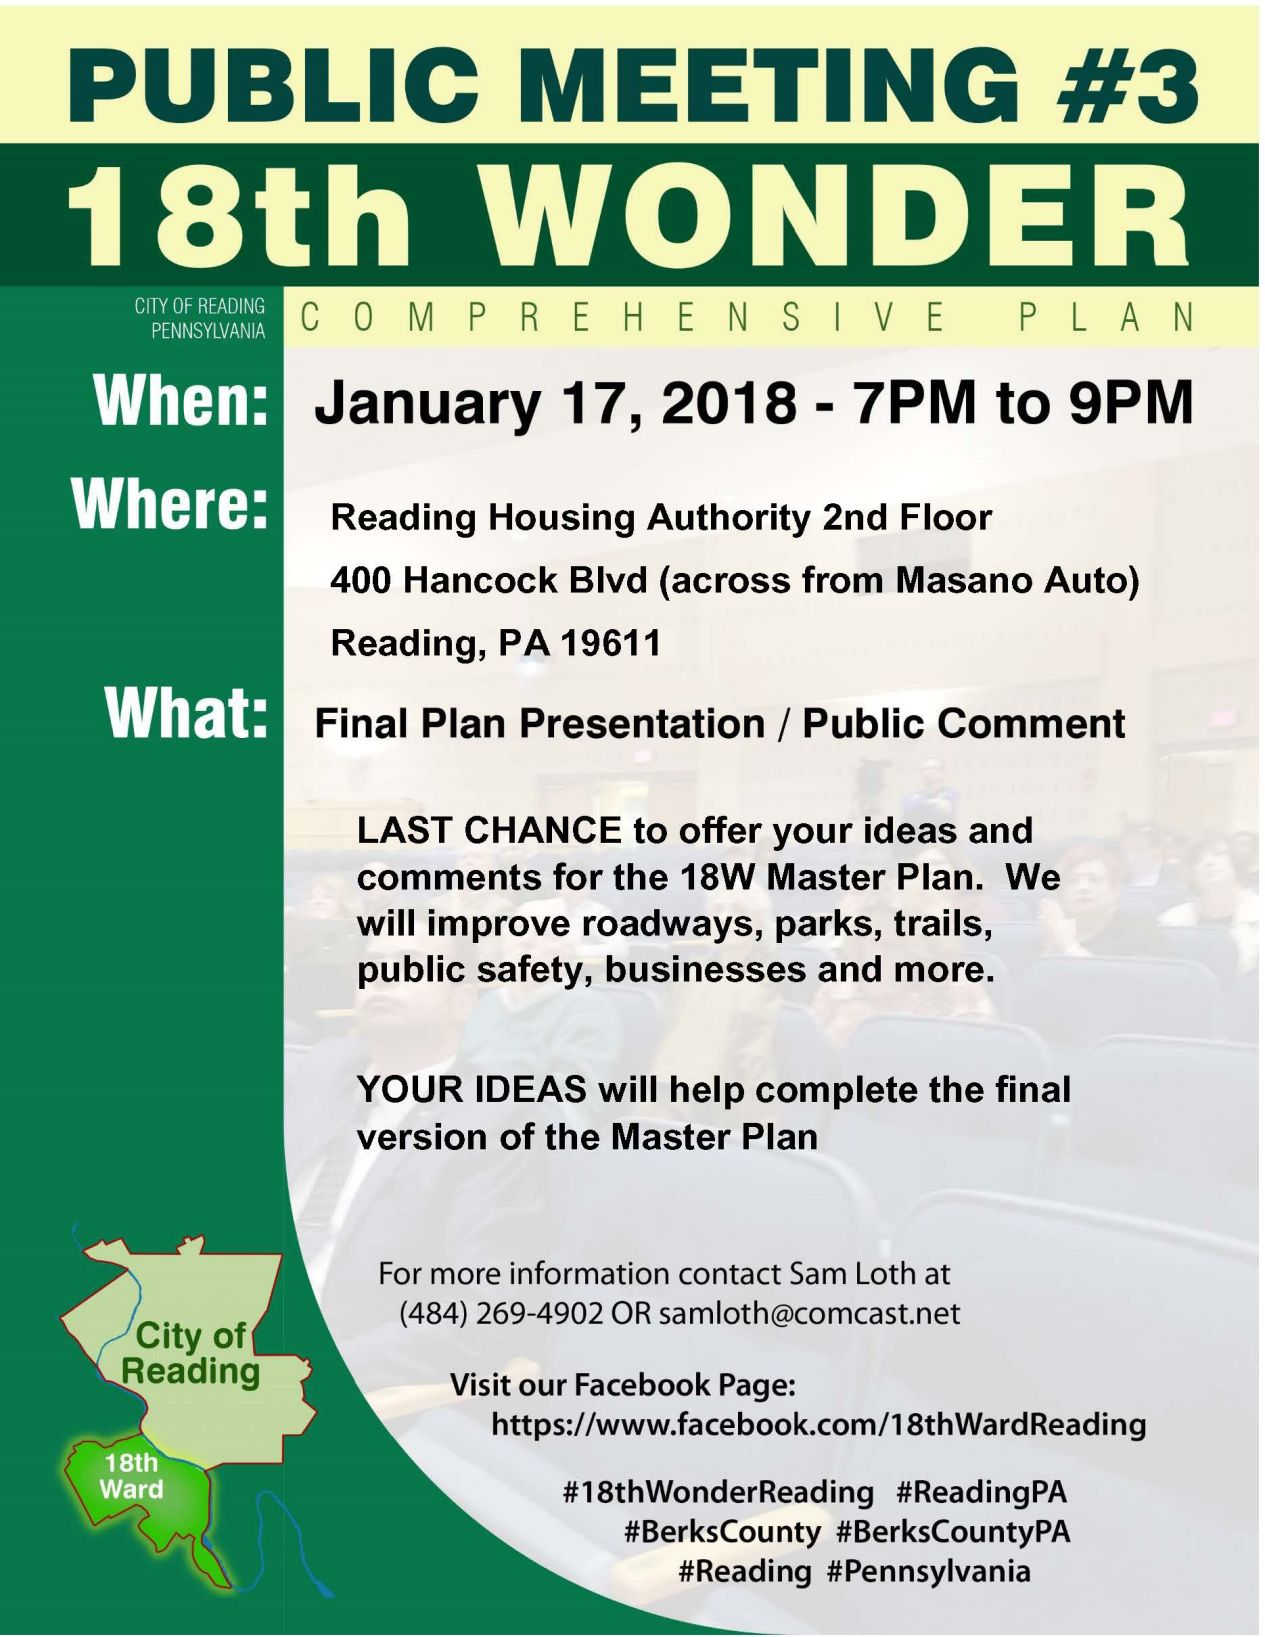 18th Ward Public Meeting #3, Final Draft Master Plan will be